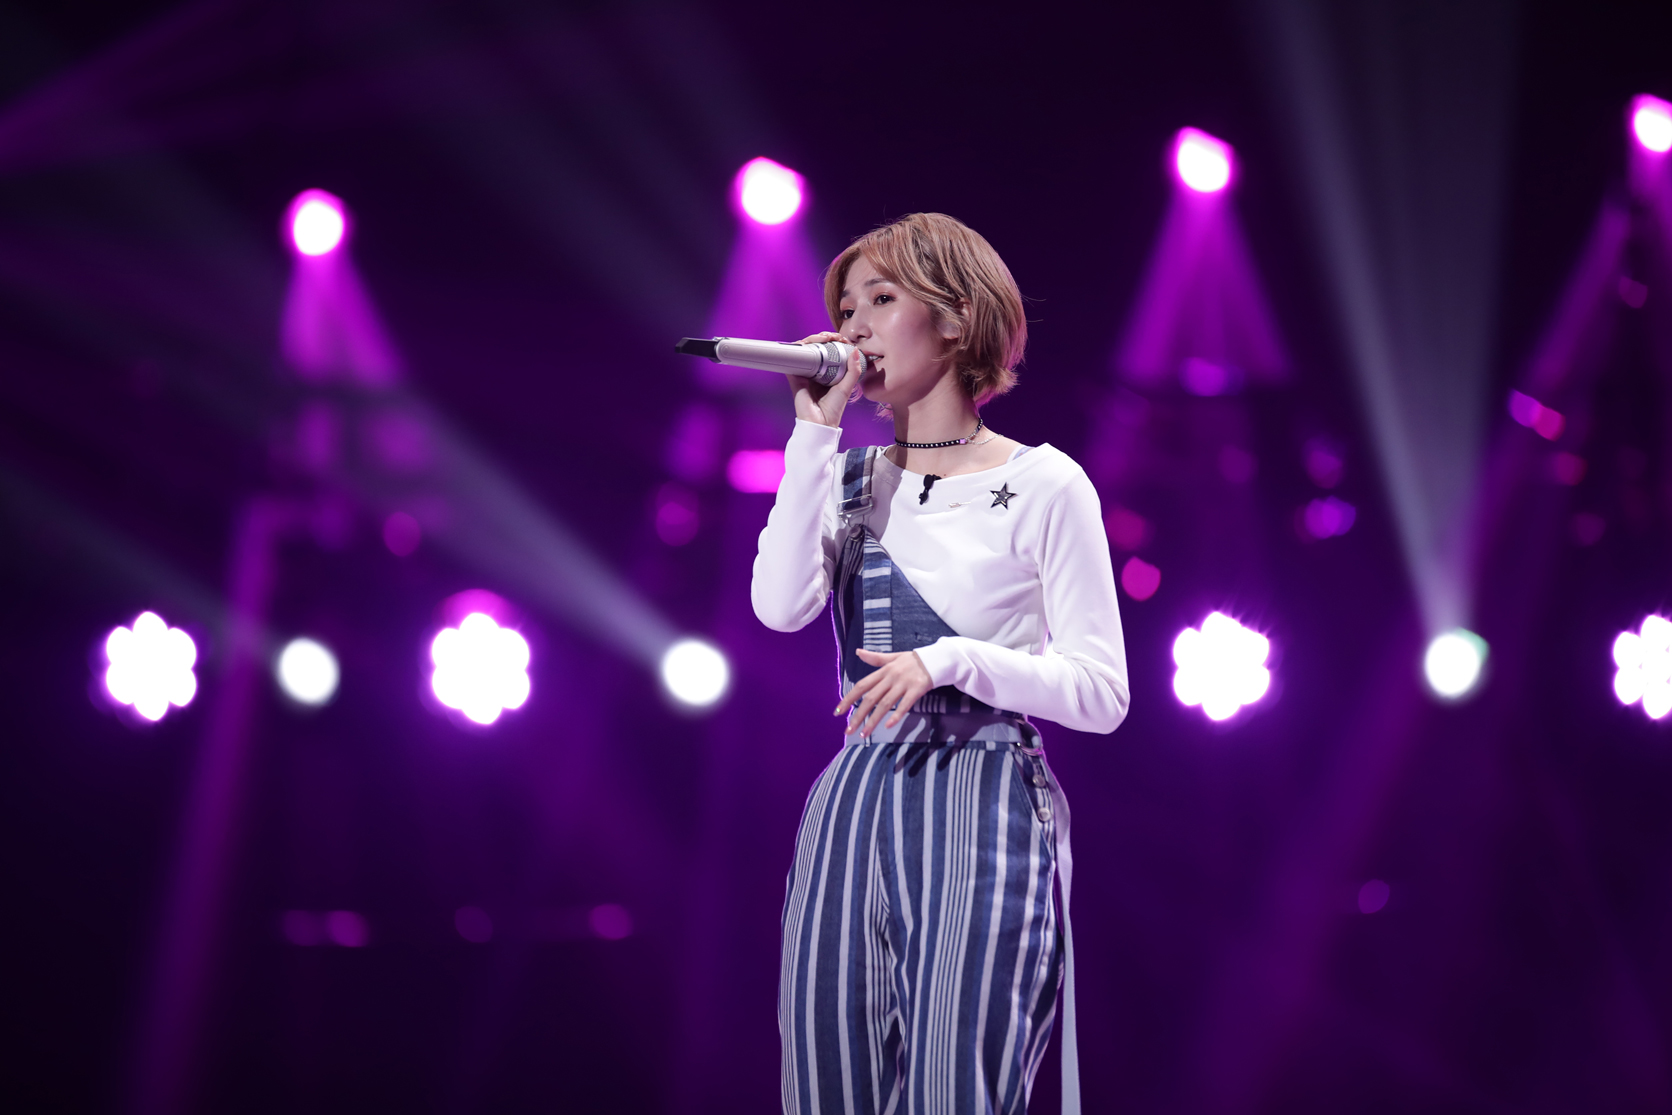 Jia zhangxin: the next station of legend has a beautiful singing voice